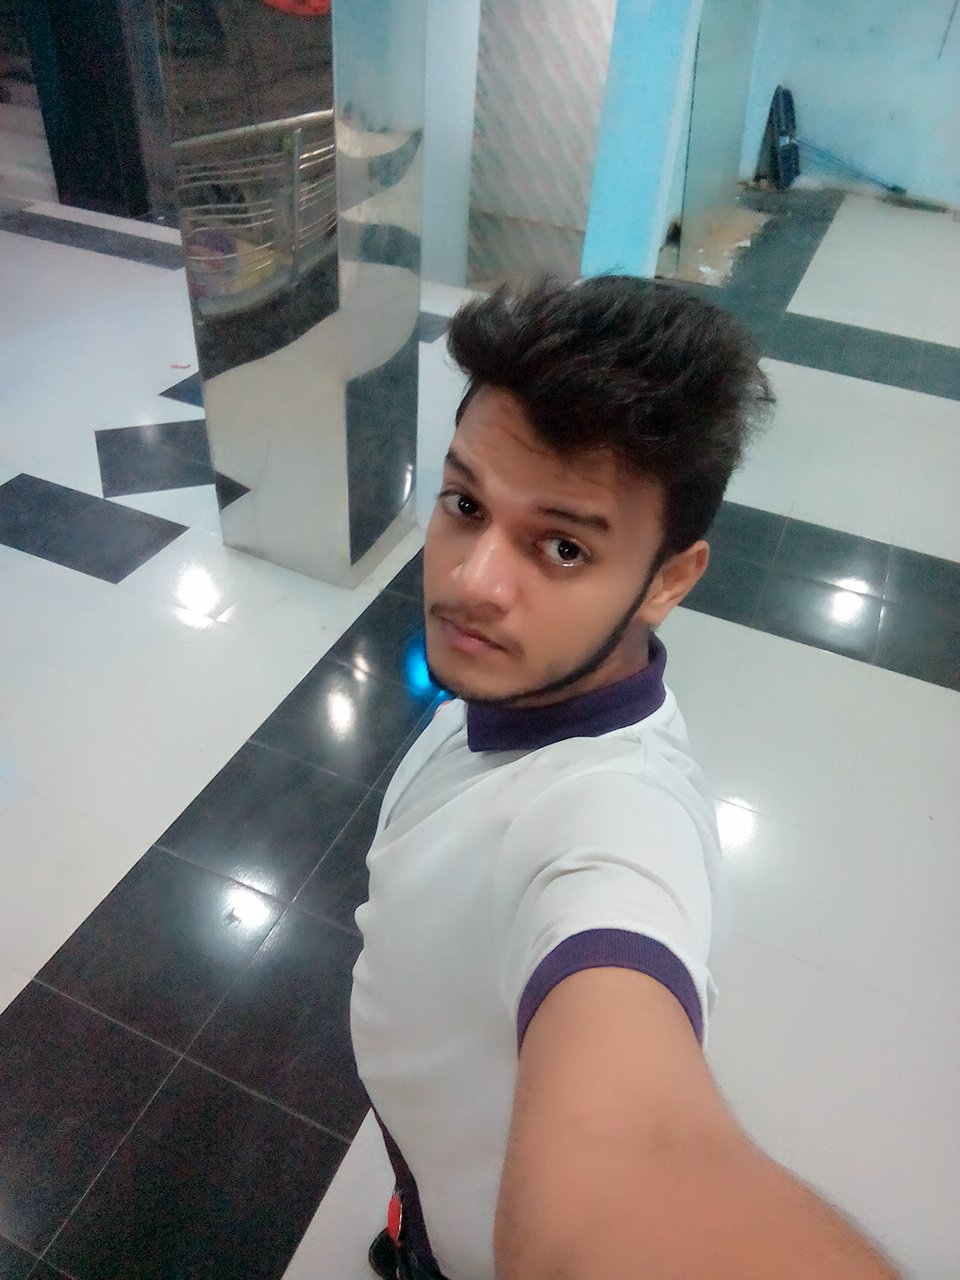 prince roman, bangladeshi male adult performer in dhaka